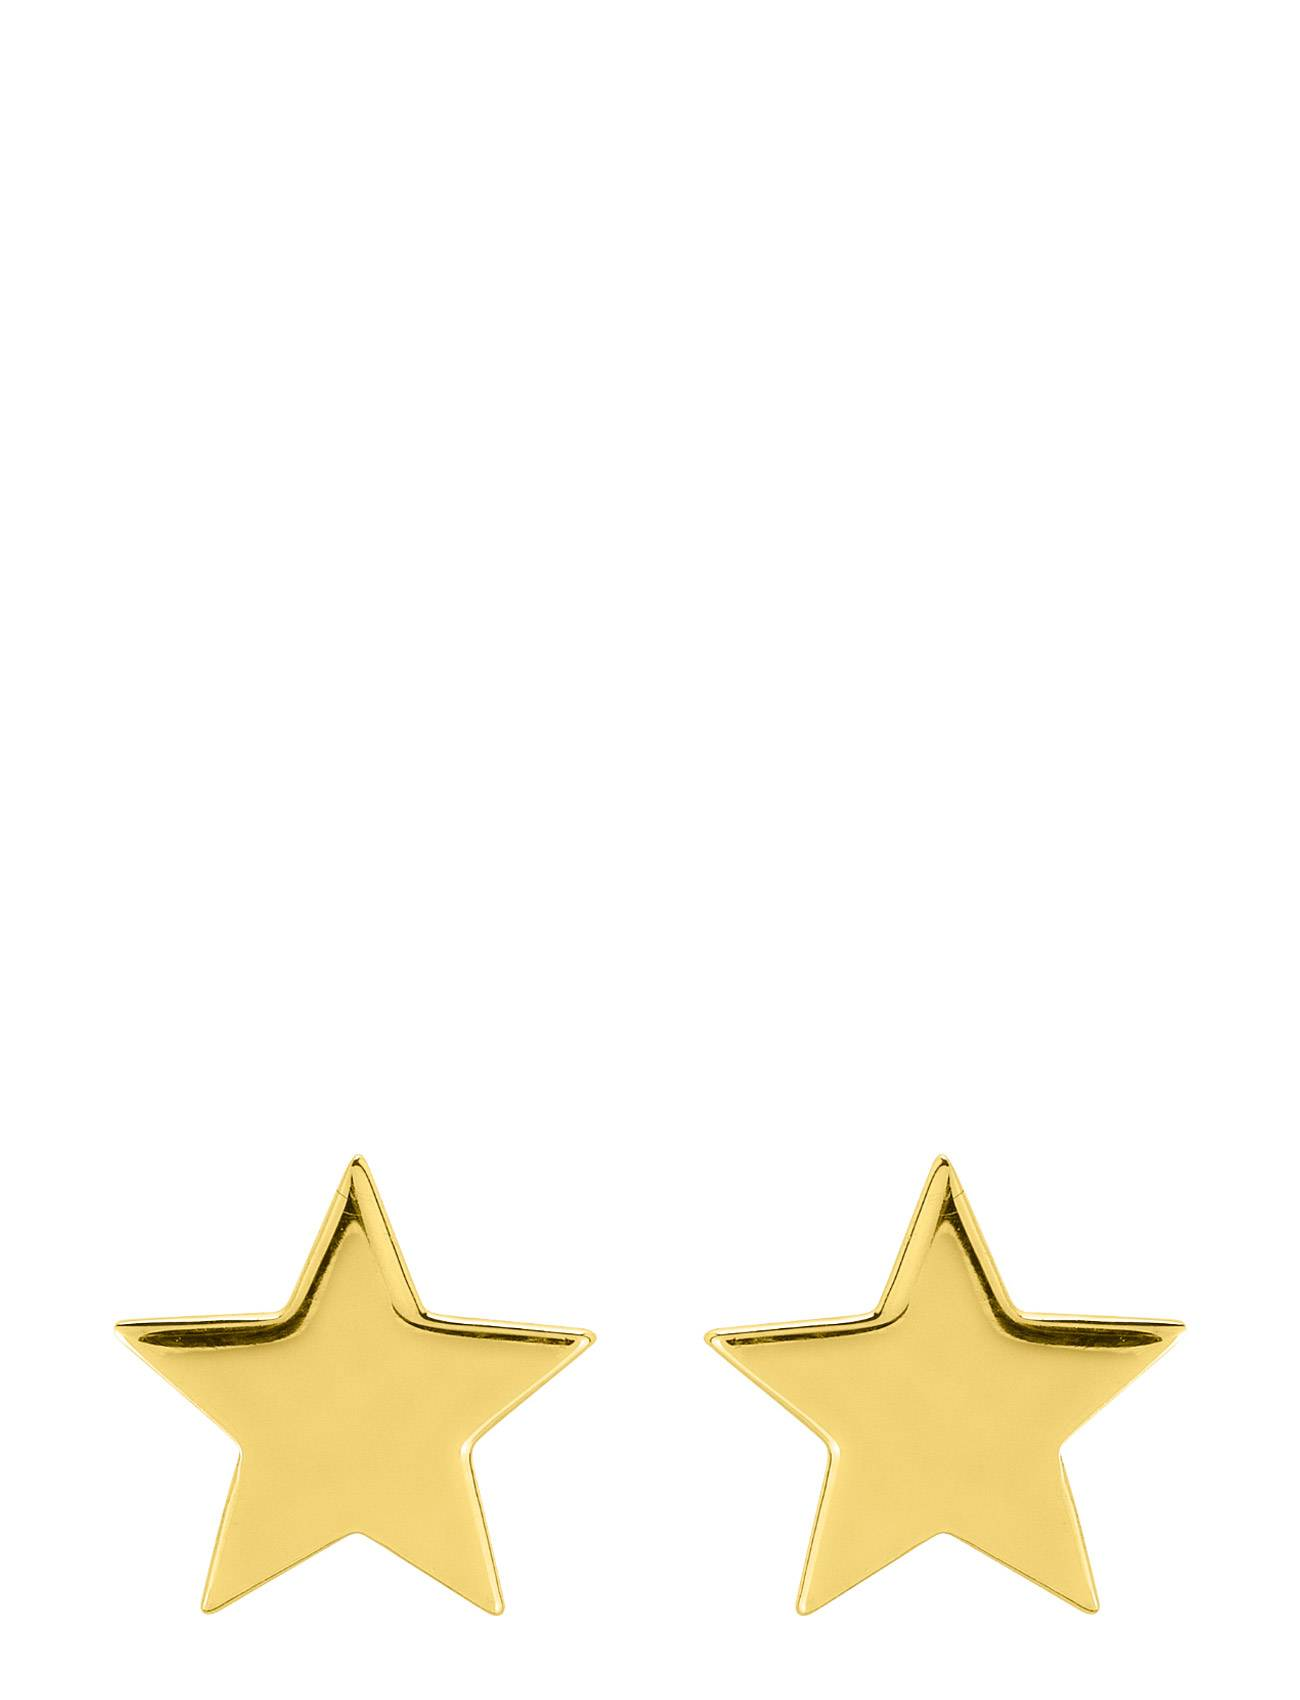 SOPHIE by SOPHIE Star Mini Studs